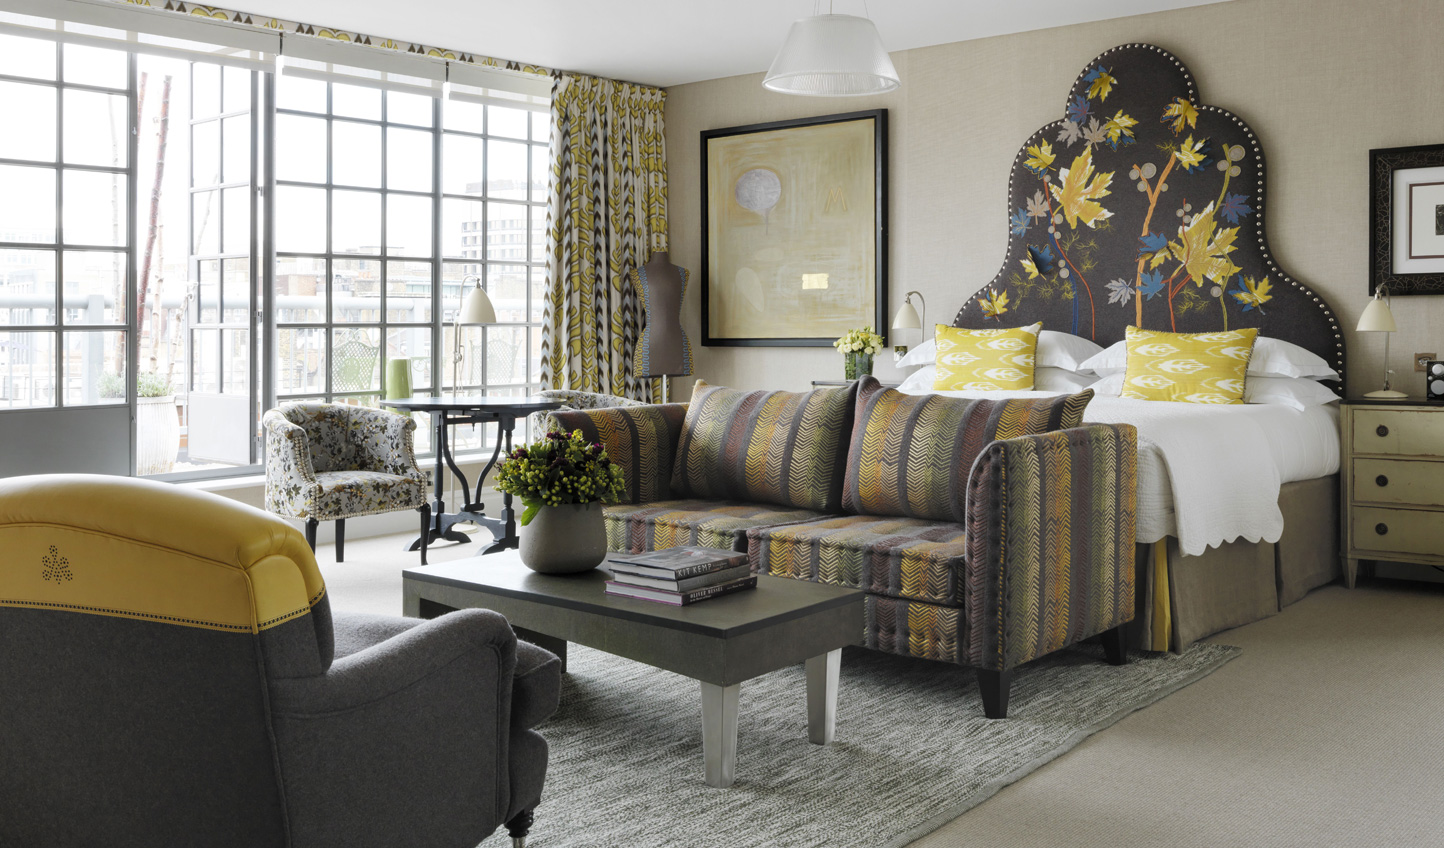 Kit Kemp has individually designed all the rooms